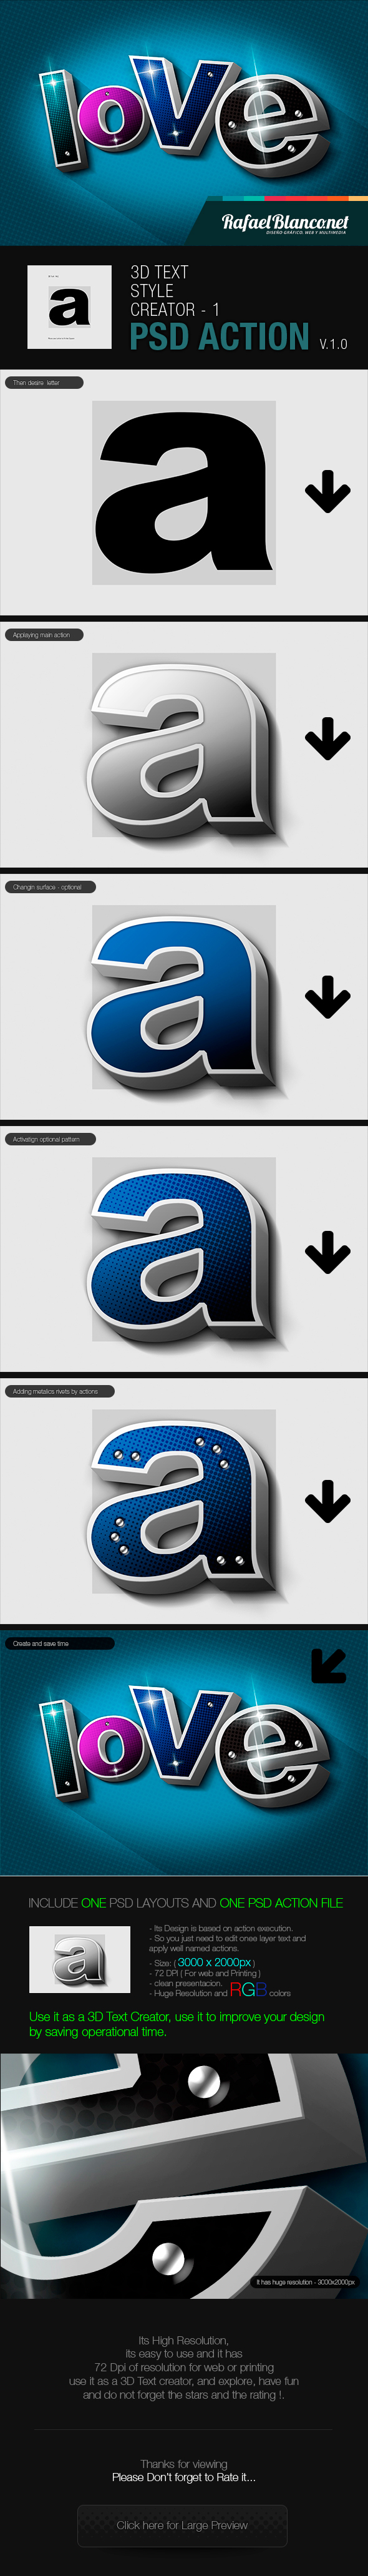 3D Text Styling by Actions - 1